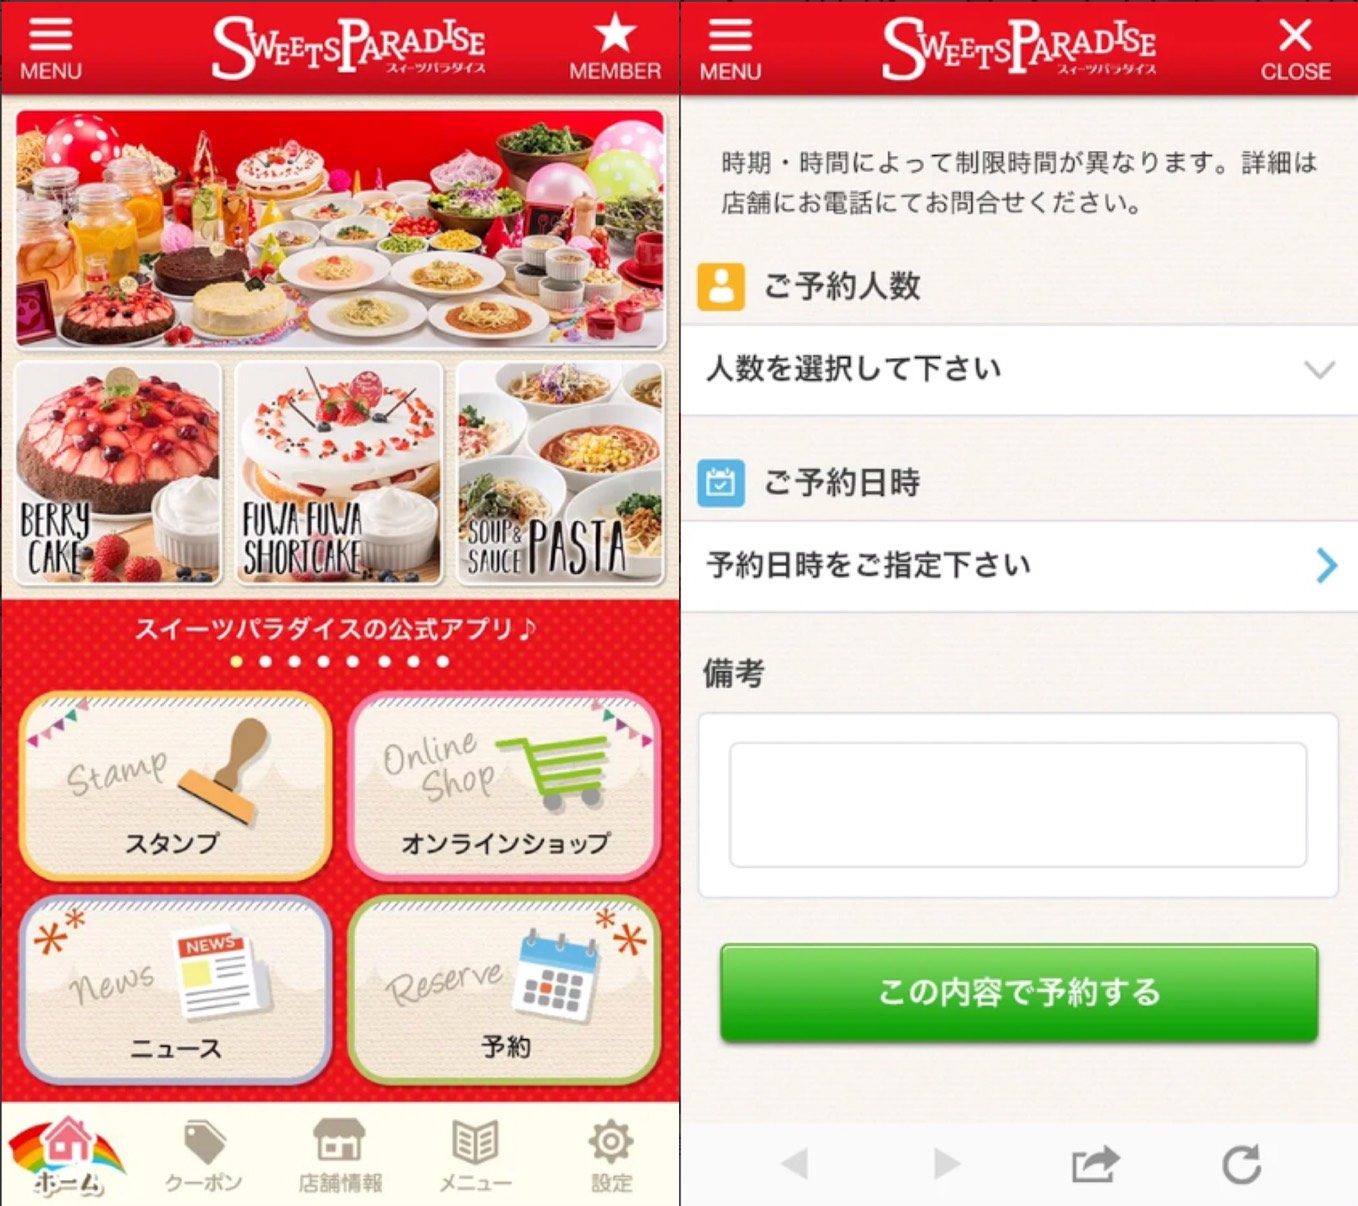 SWEETS PARADISE APP